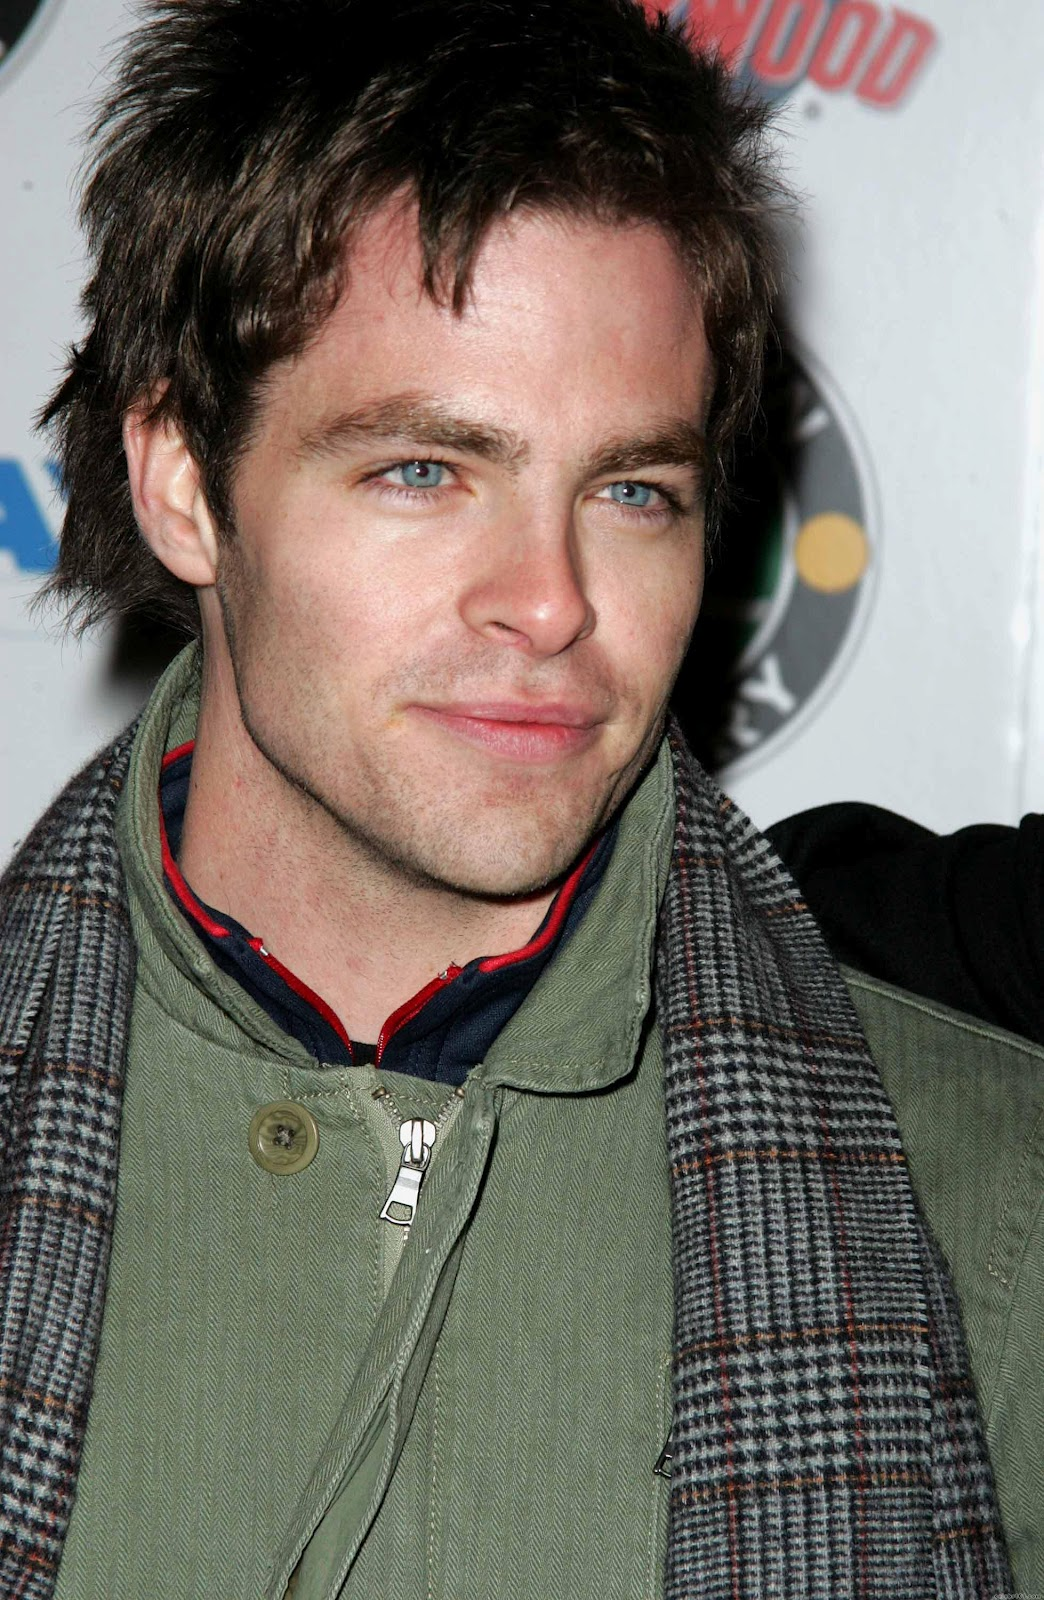 Chris Pine On The Set Of One Day She Ll Darken: All Top Hollywood Celebrities: Chris Pine Biography- Chris